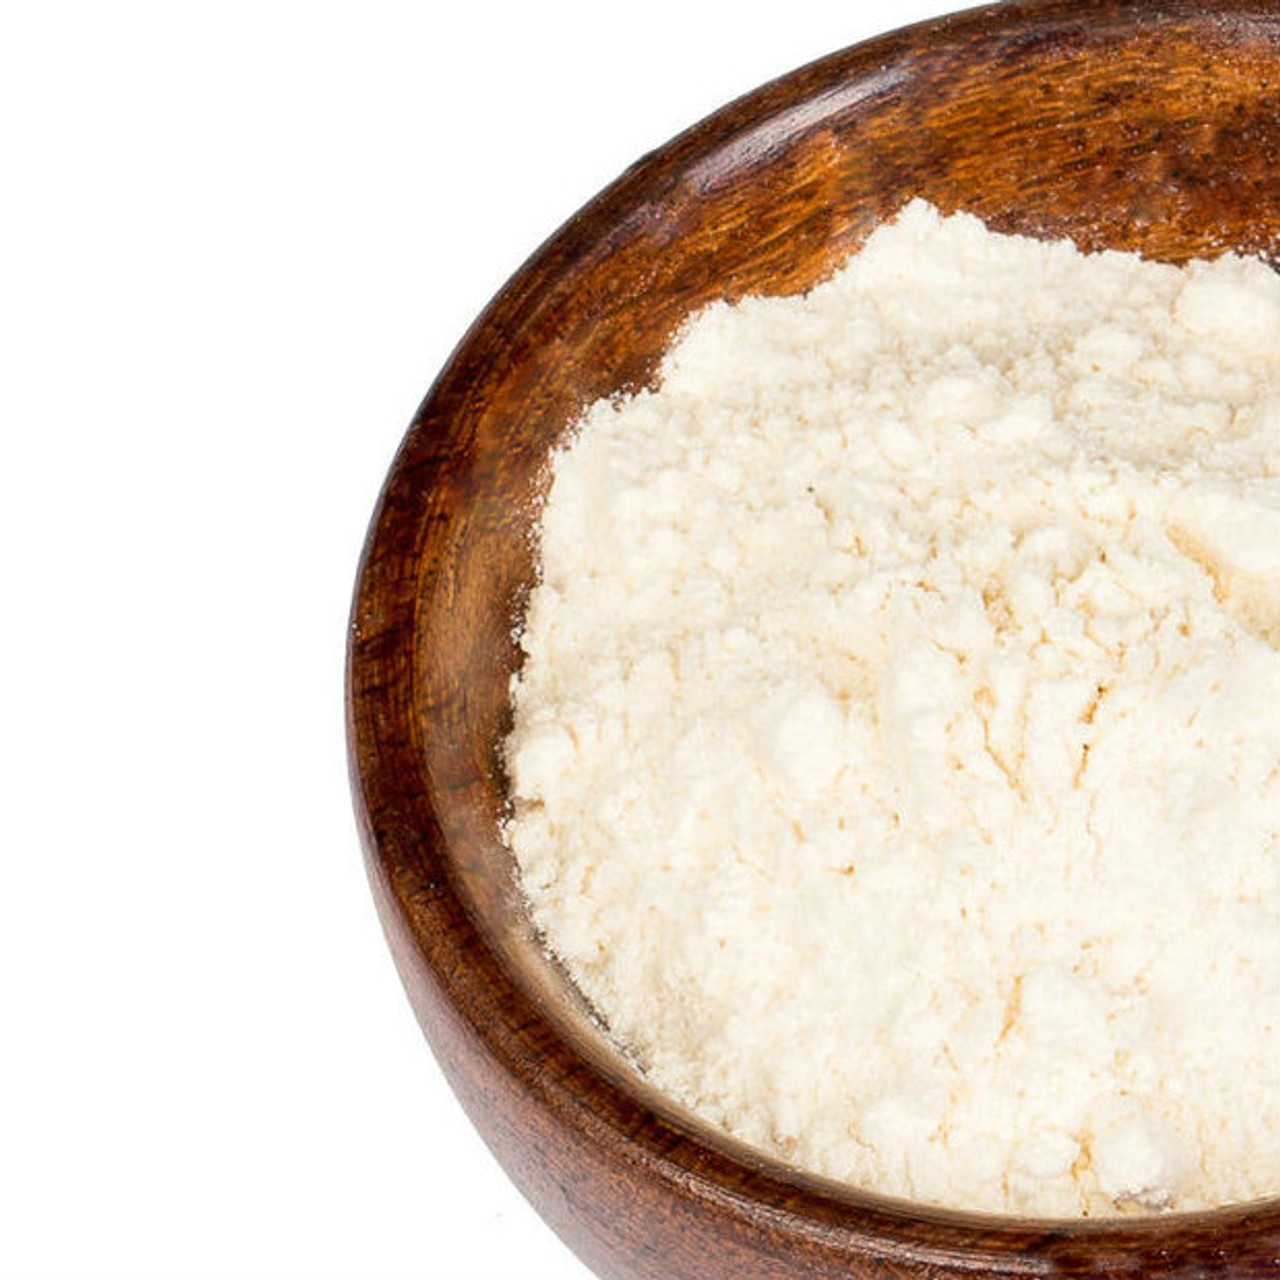 Granulated Powder is a convenient way to add the pungent, savory flavor of garlic to a recipe without the time and hassle of preparing fresh garlic. Use anywhere you would use fresh garlic. Great in marinades and salad dressings. Add to spice and seasoning mixes for meat, fish and vegetables. Mix with aioli for a delicious dip for vegetables, chips or French fries. Toss with potatoes before roasting. Mix with salt to make a flavor-packed seasoning for popcorn or potato chips.